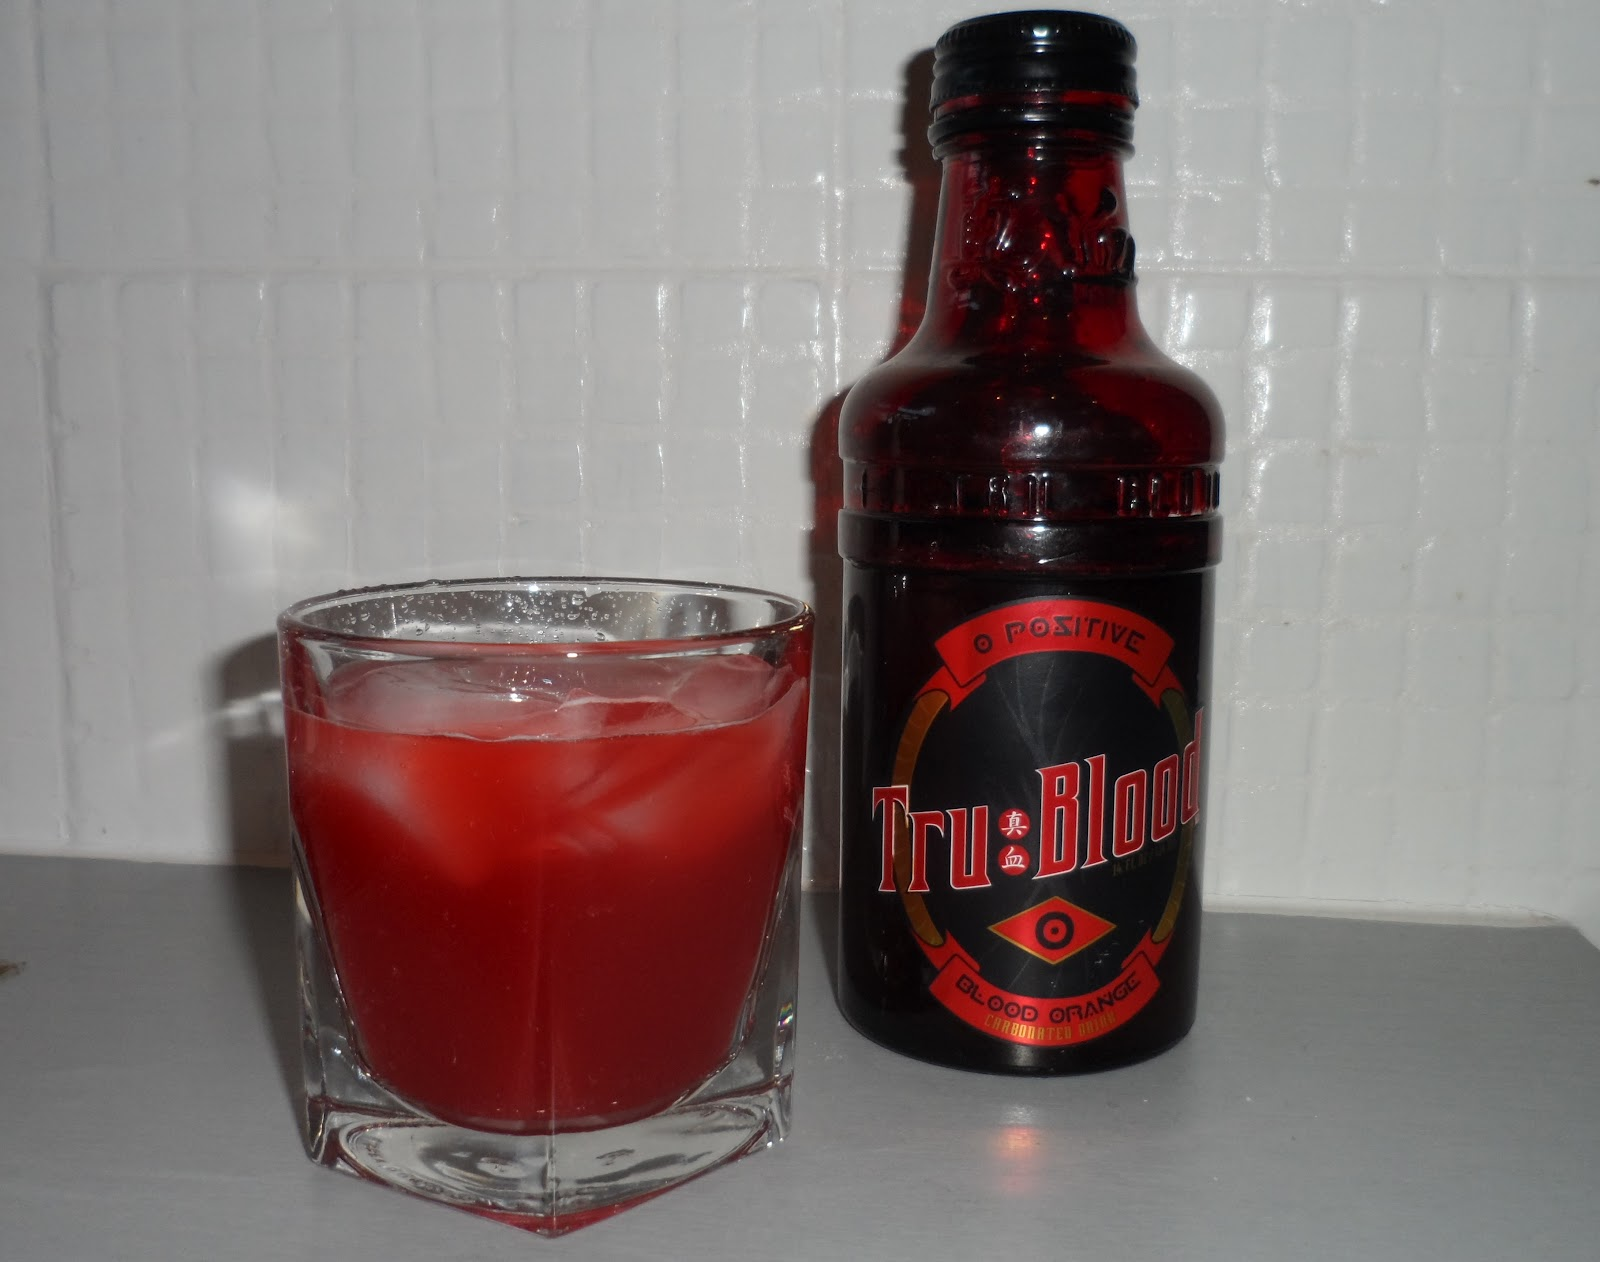 cyber-candy-true-blood-collectable-bottle-blood-orange-drink-3